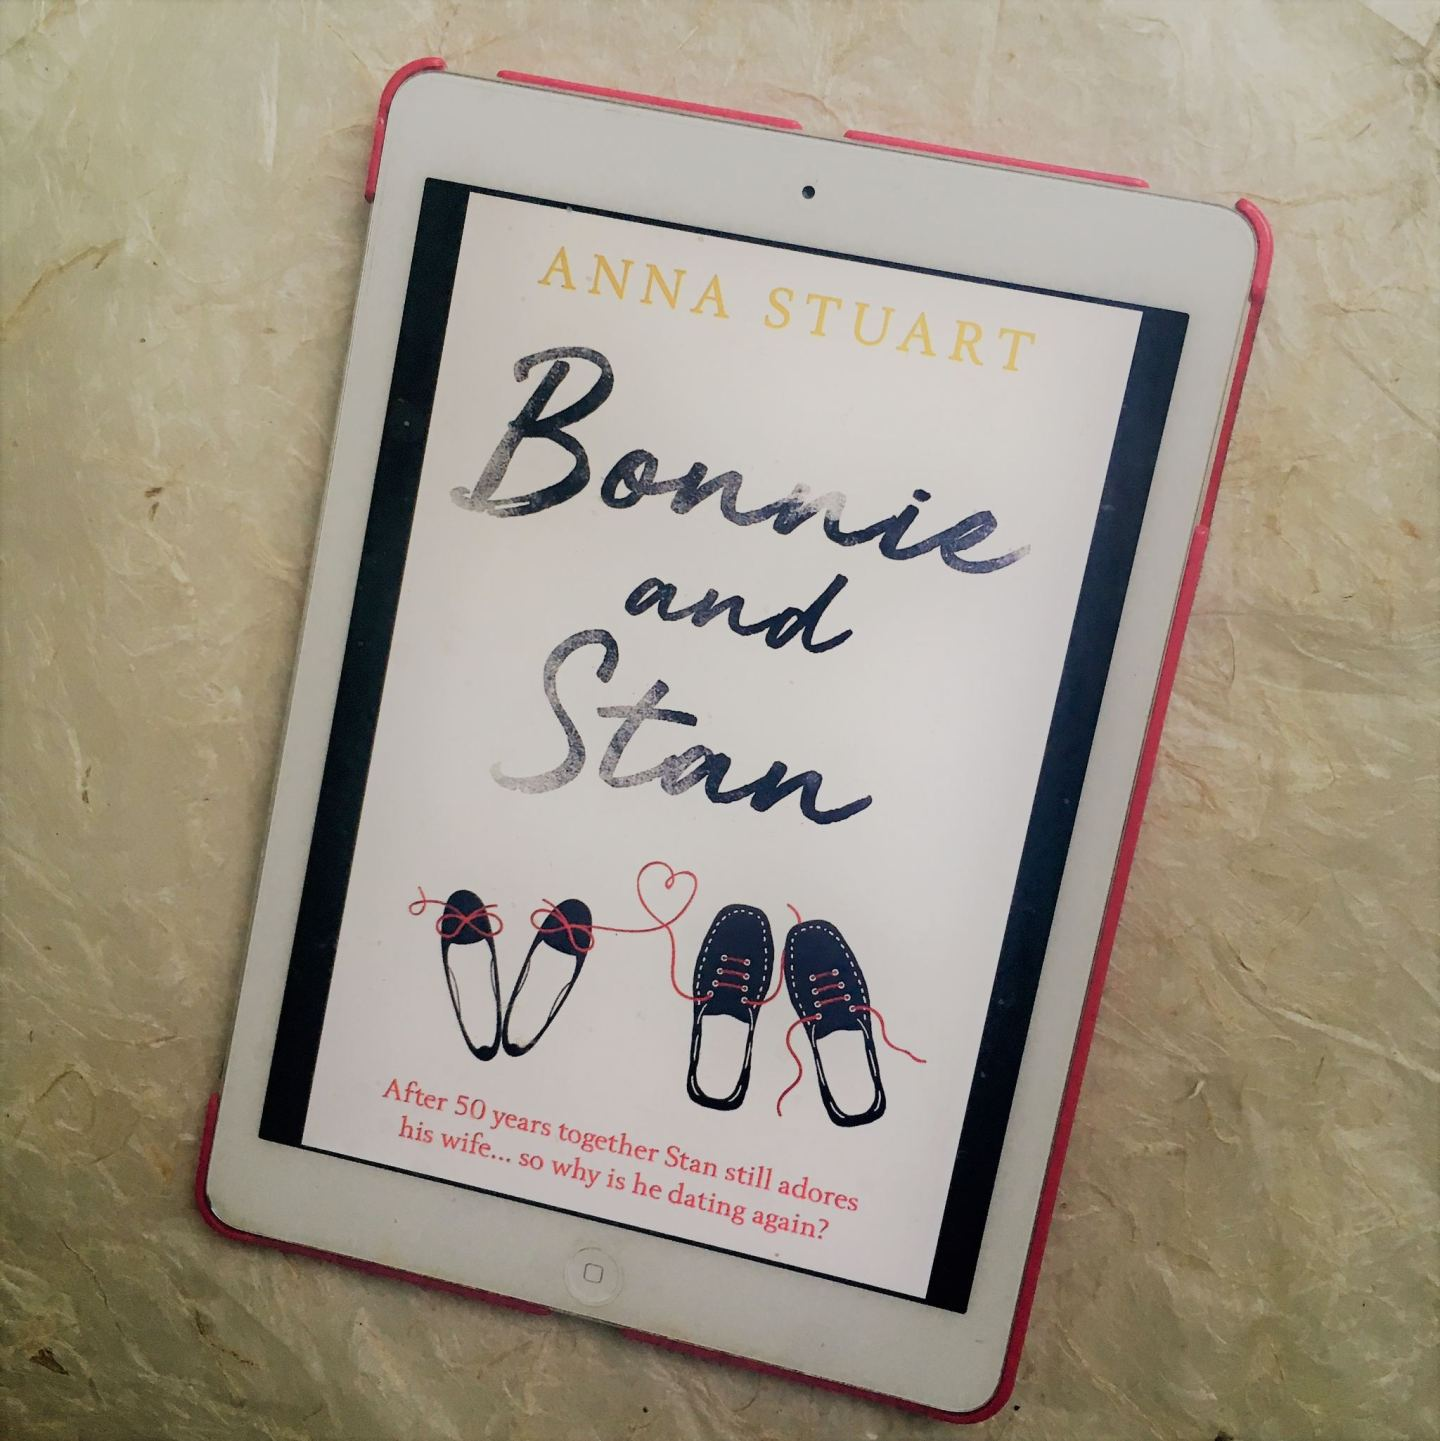 Bonnie and Stan; a celebration of love and life